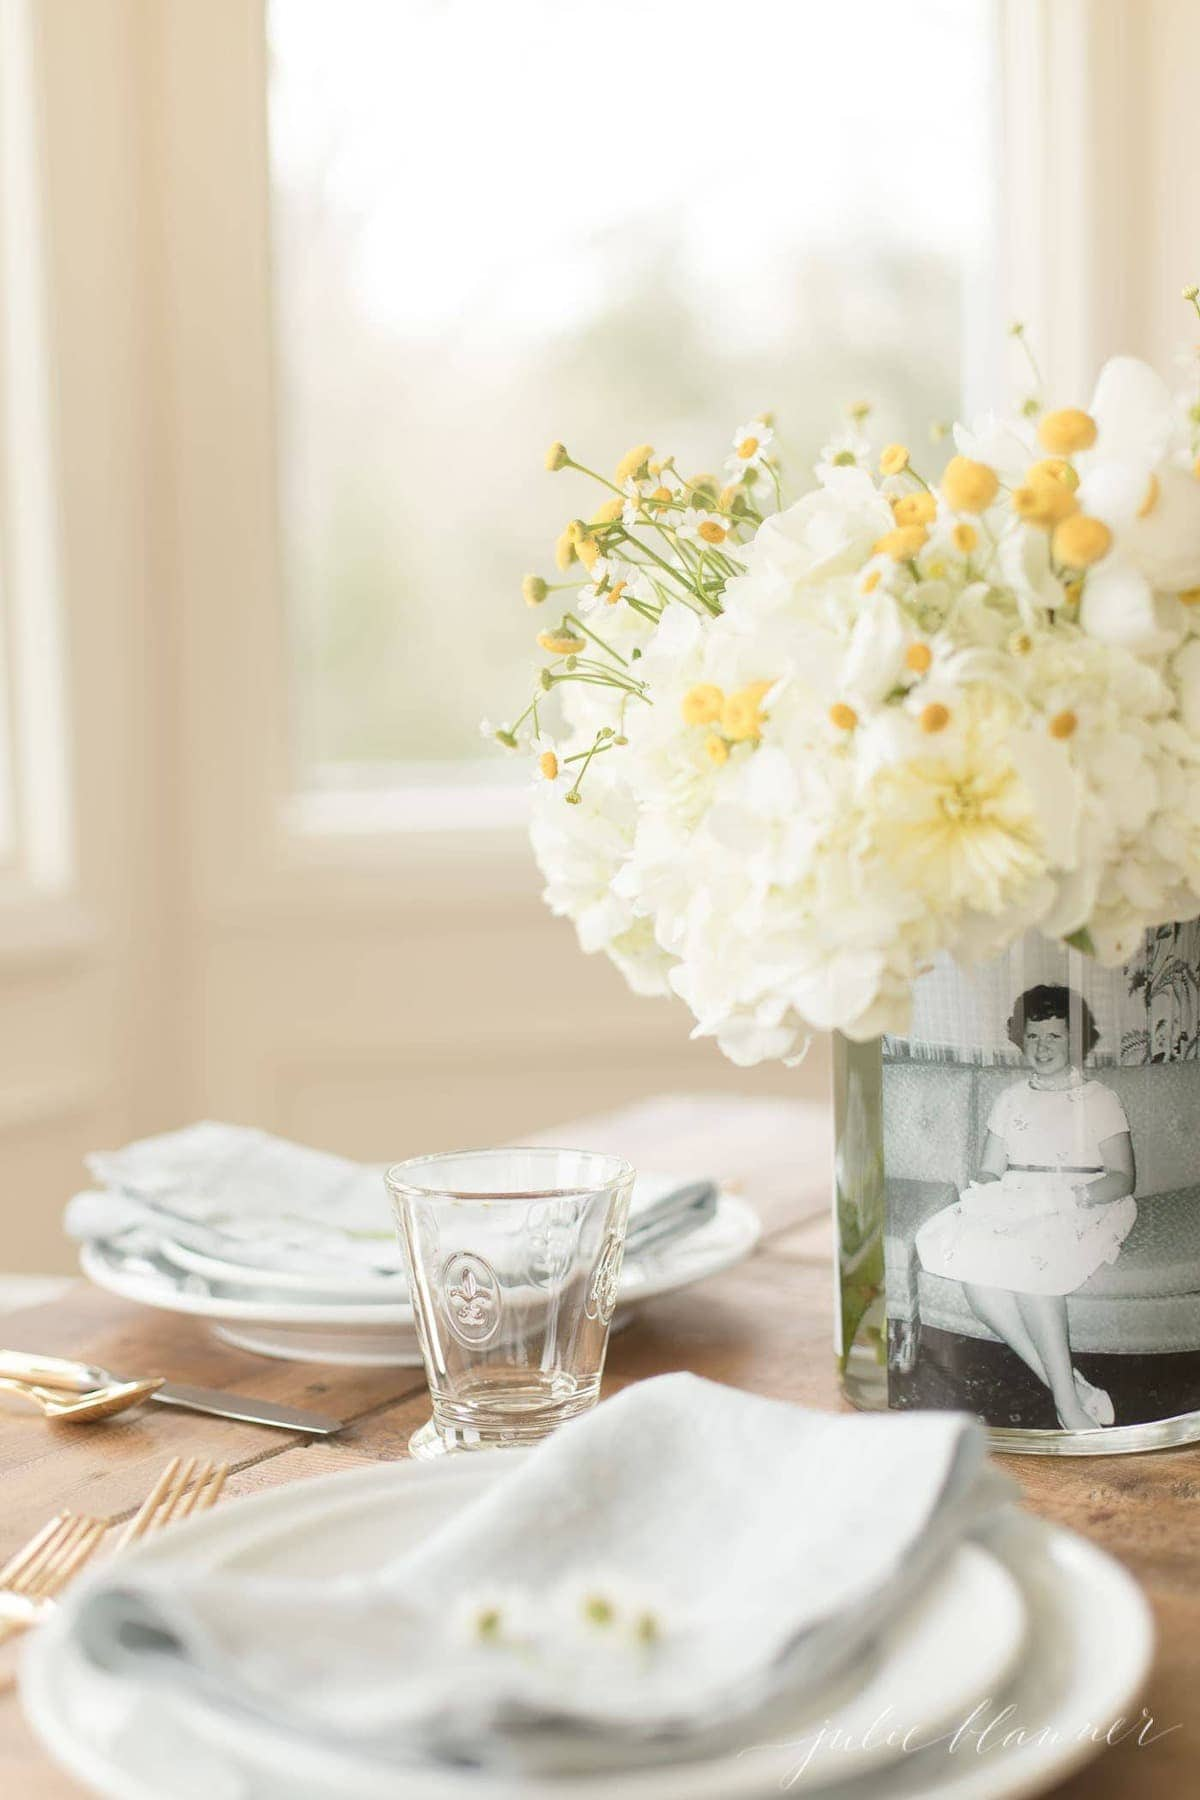 mother's day photo centerpiece on table set with white dishes and glassware